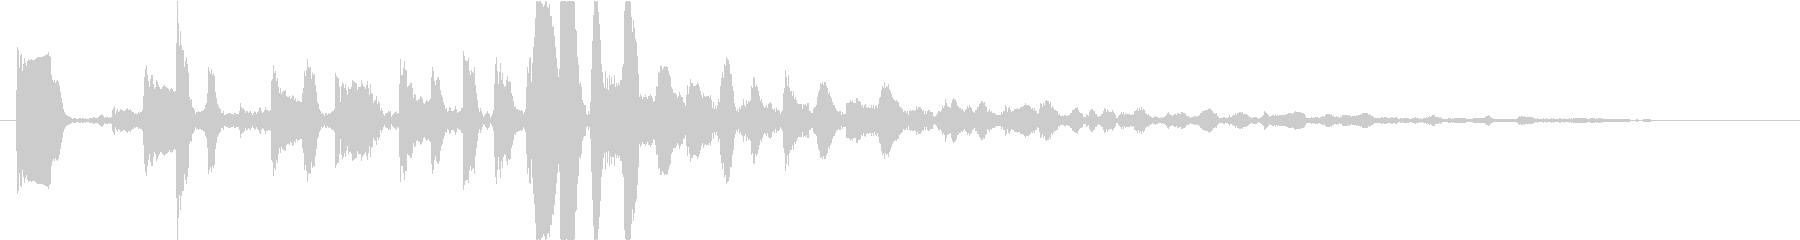 Cool and short synth jingle's unreproduced waveform